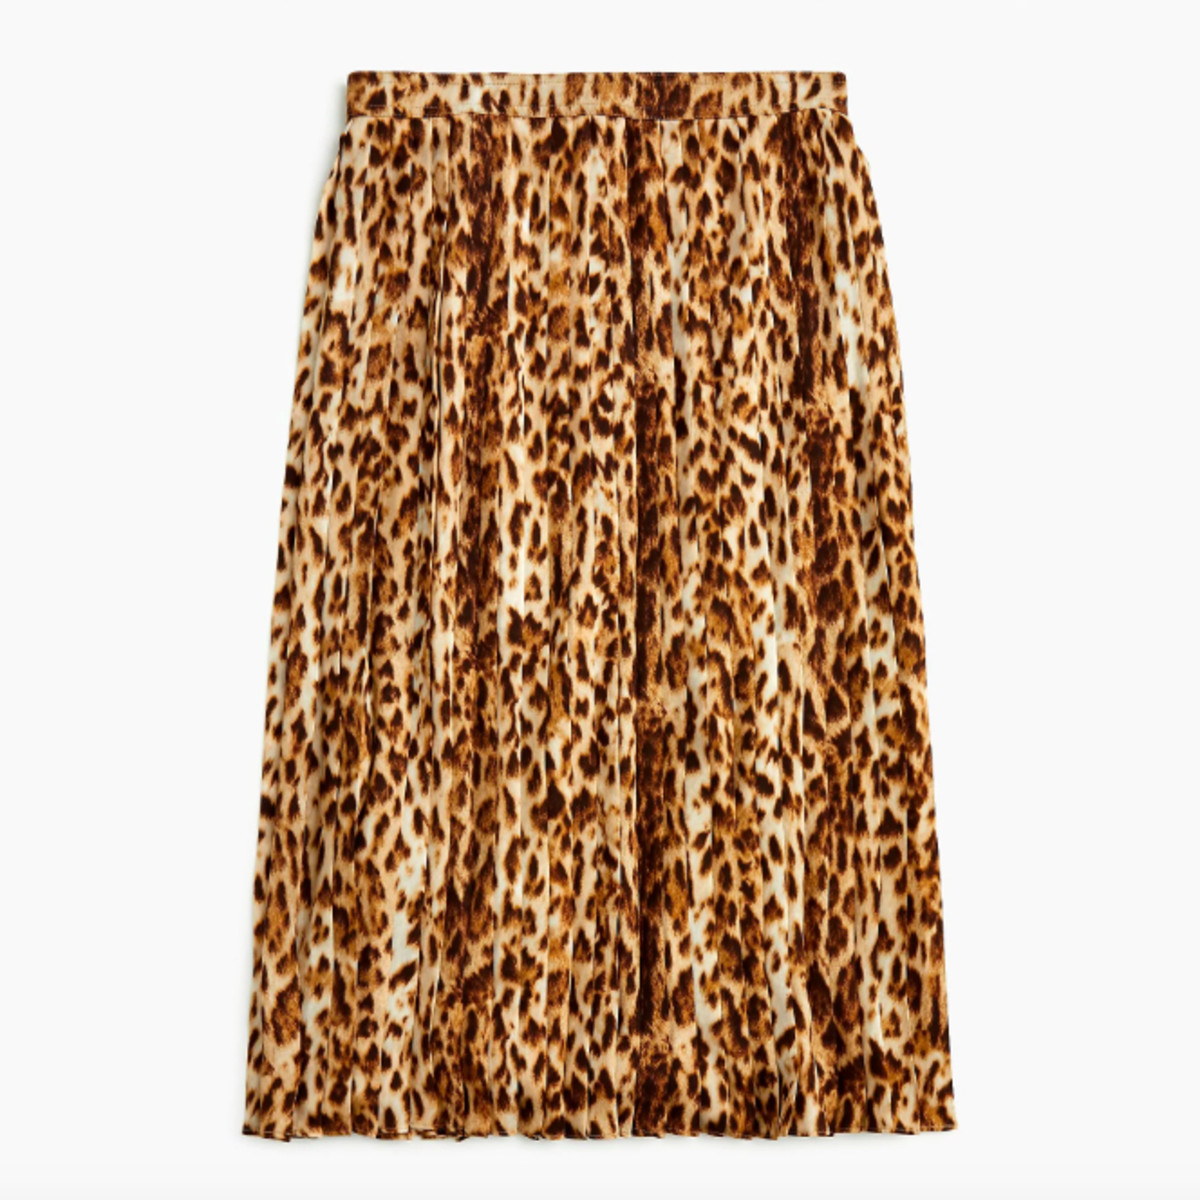 J.Crew pleated leopard midi skirt, $118, available here.